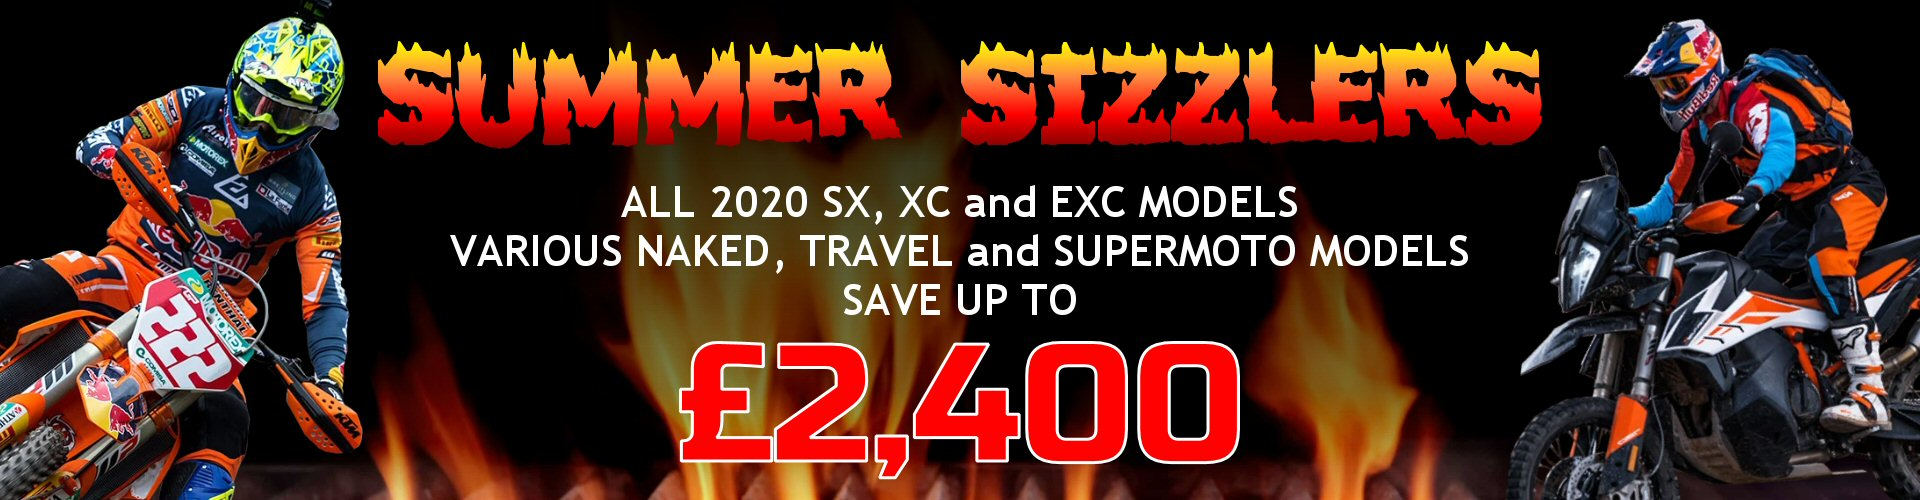 SUMMER SIZZLERS SAVE NOW